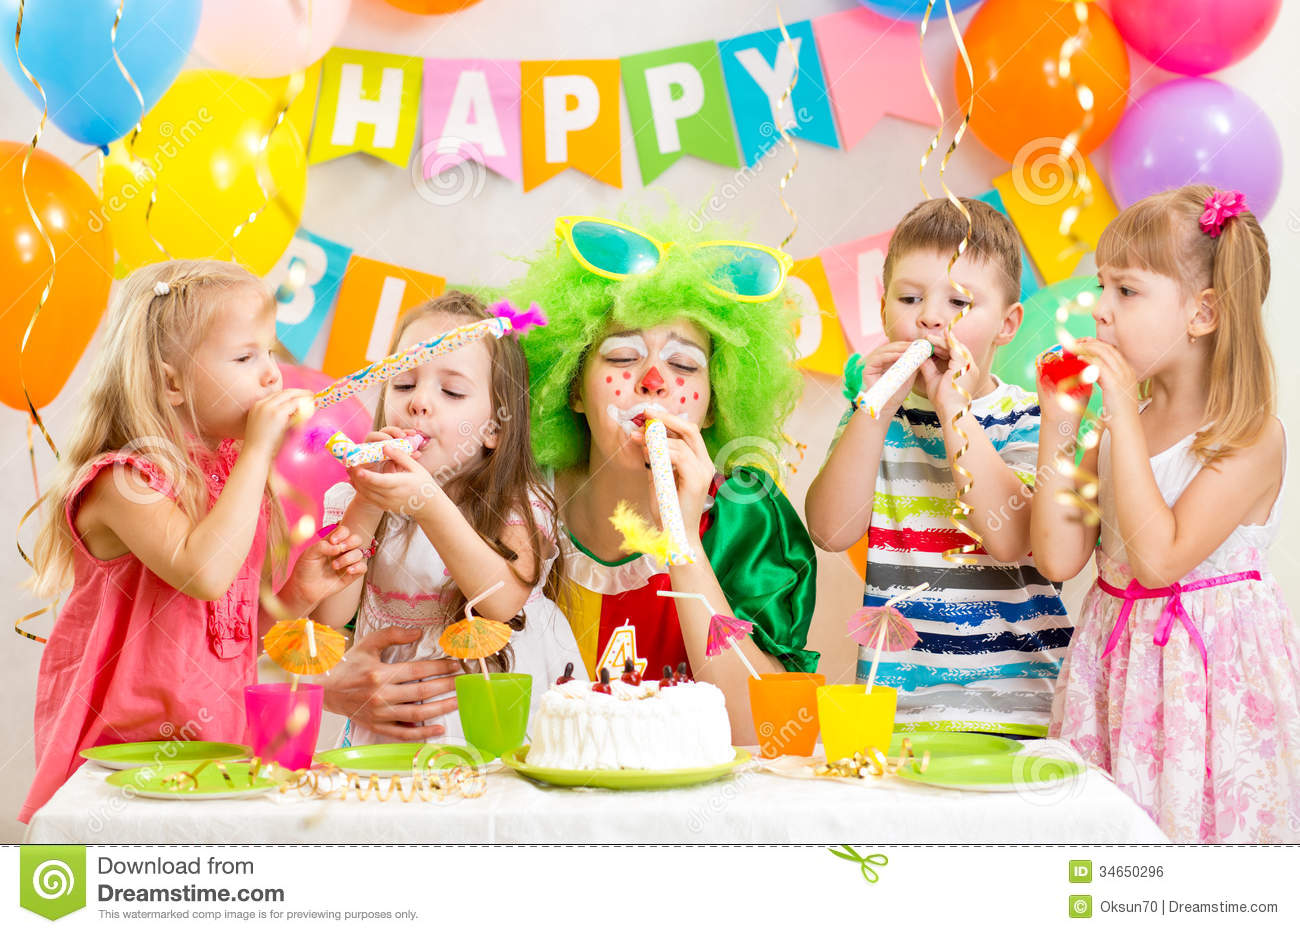 picture of birthday party celebration ; kids-clown-celebrate-birthday-party-34650296